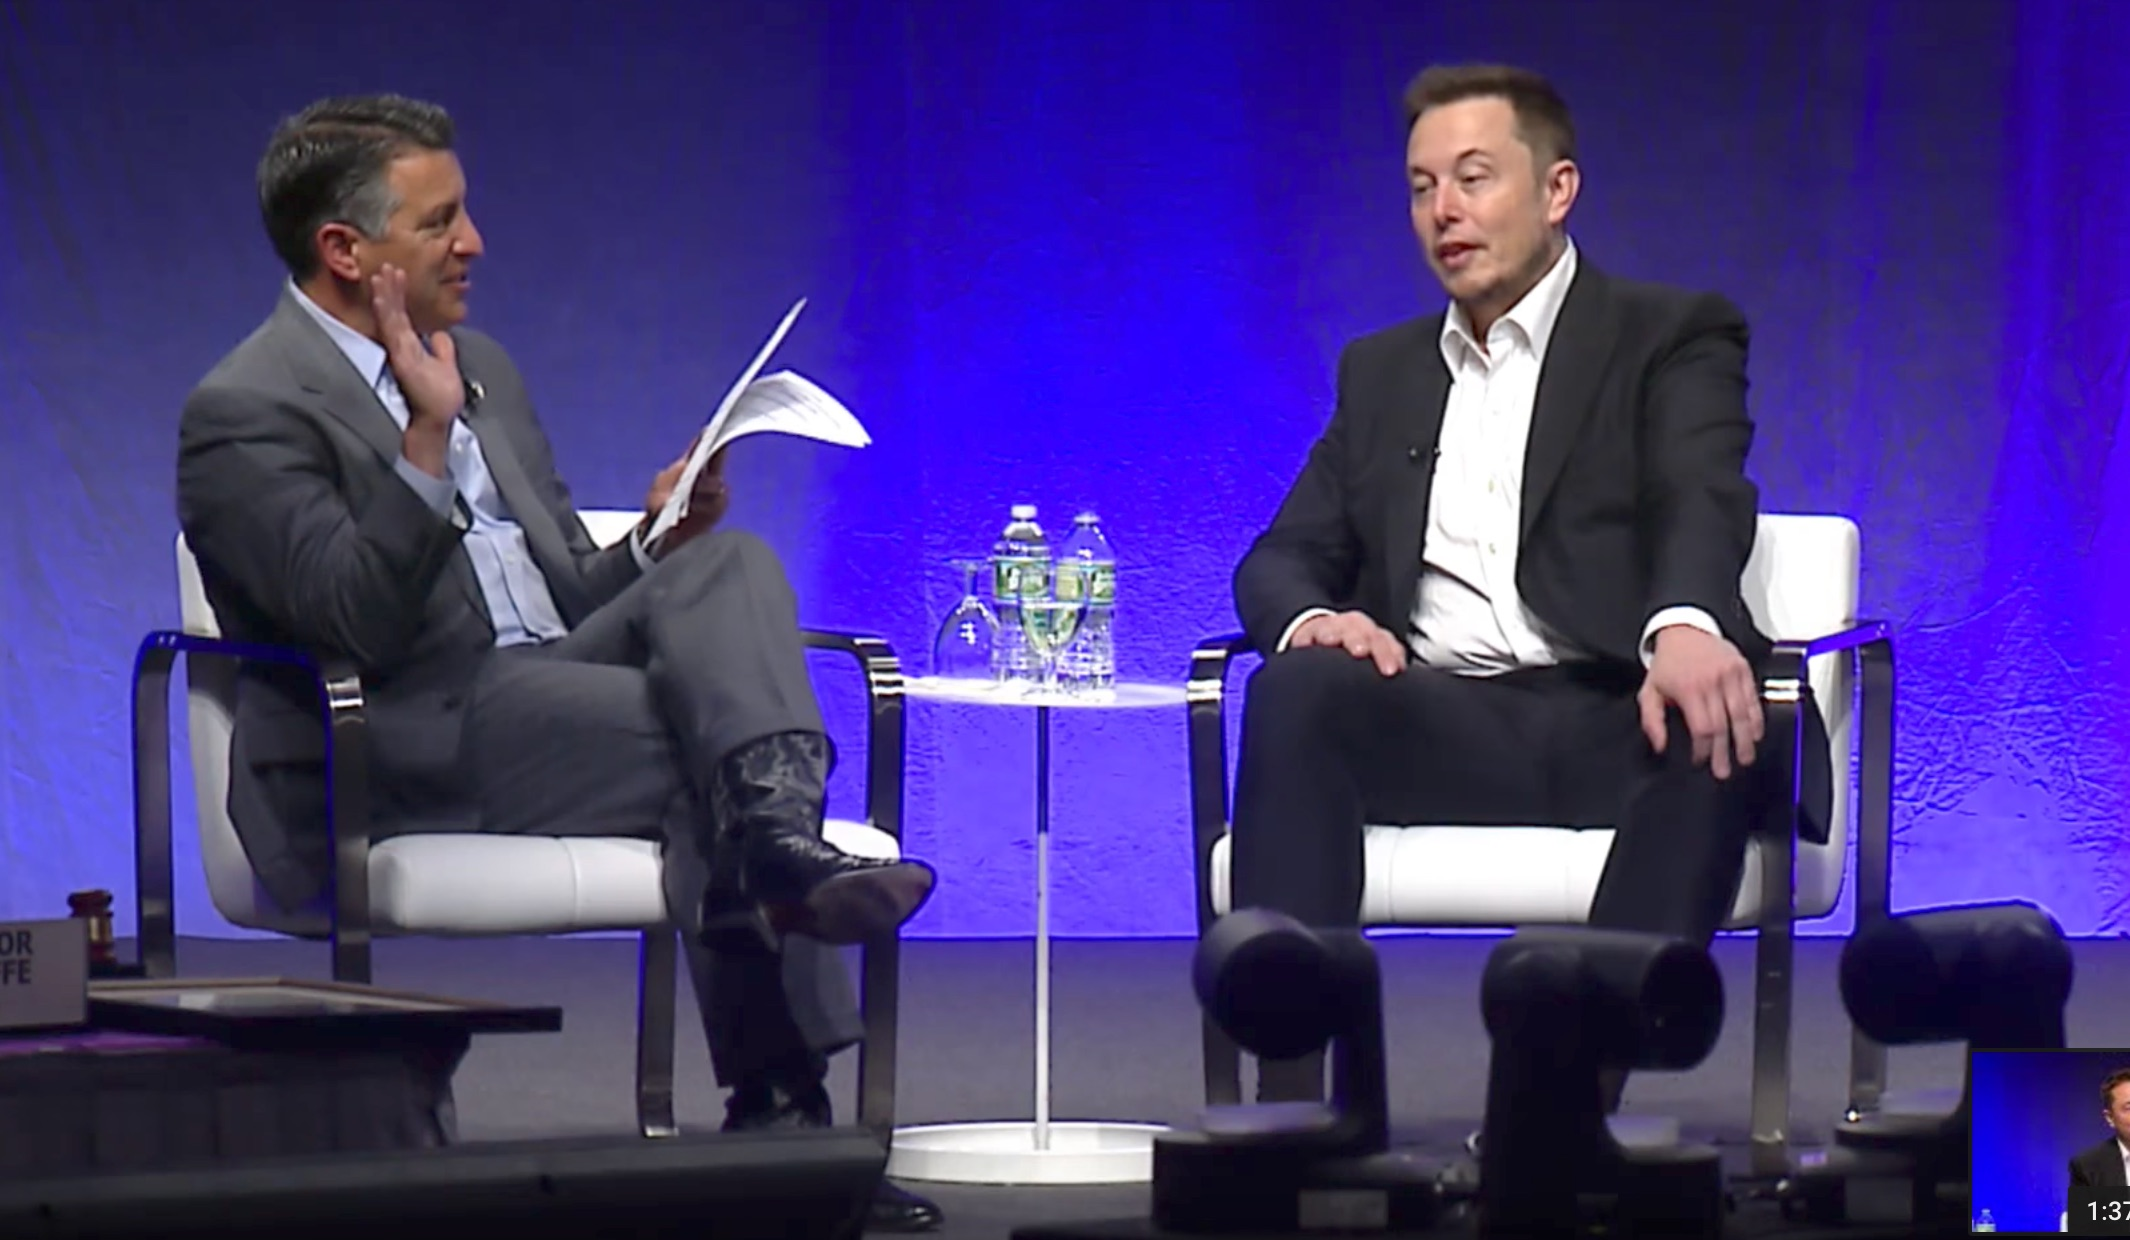 Elon Musk 50 Of New Cars Will Be Electric In 10 Years